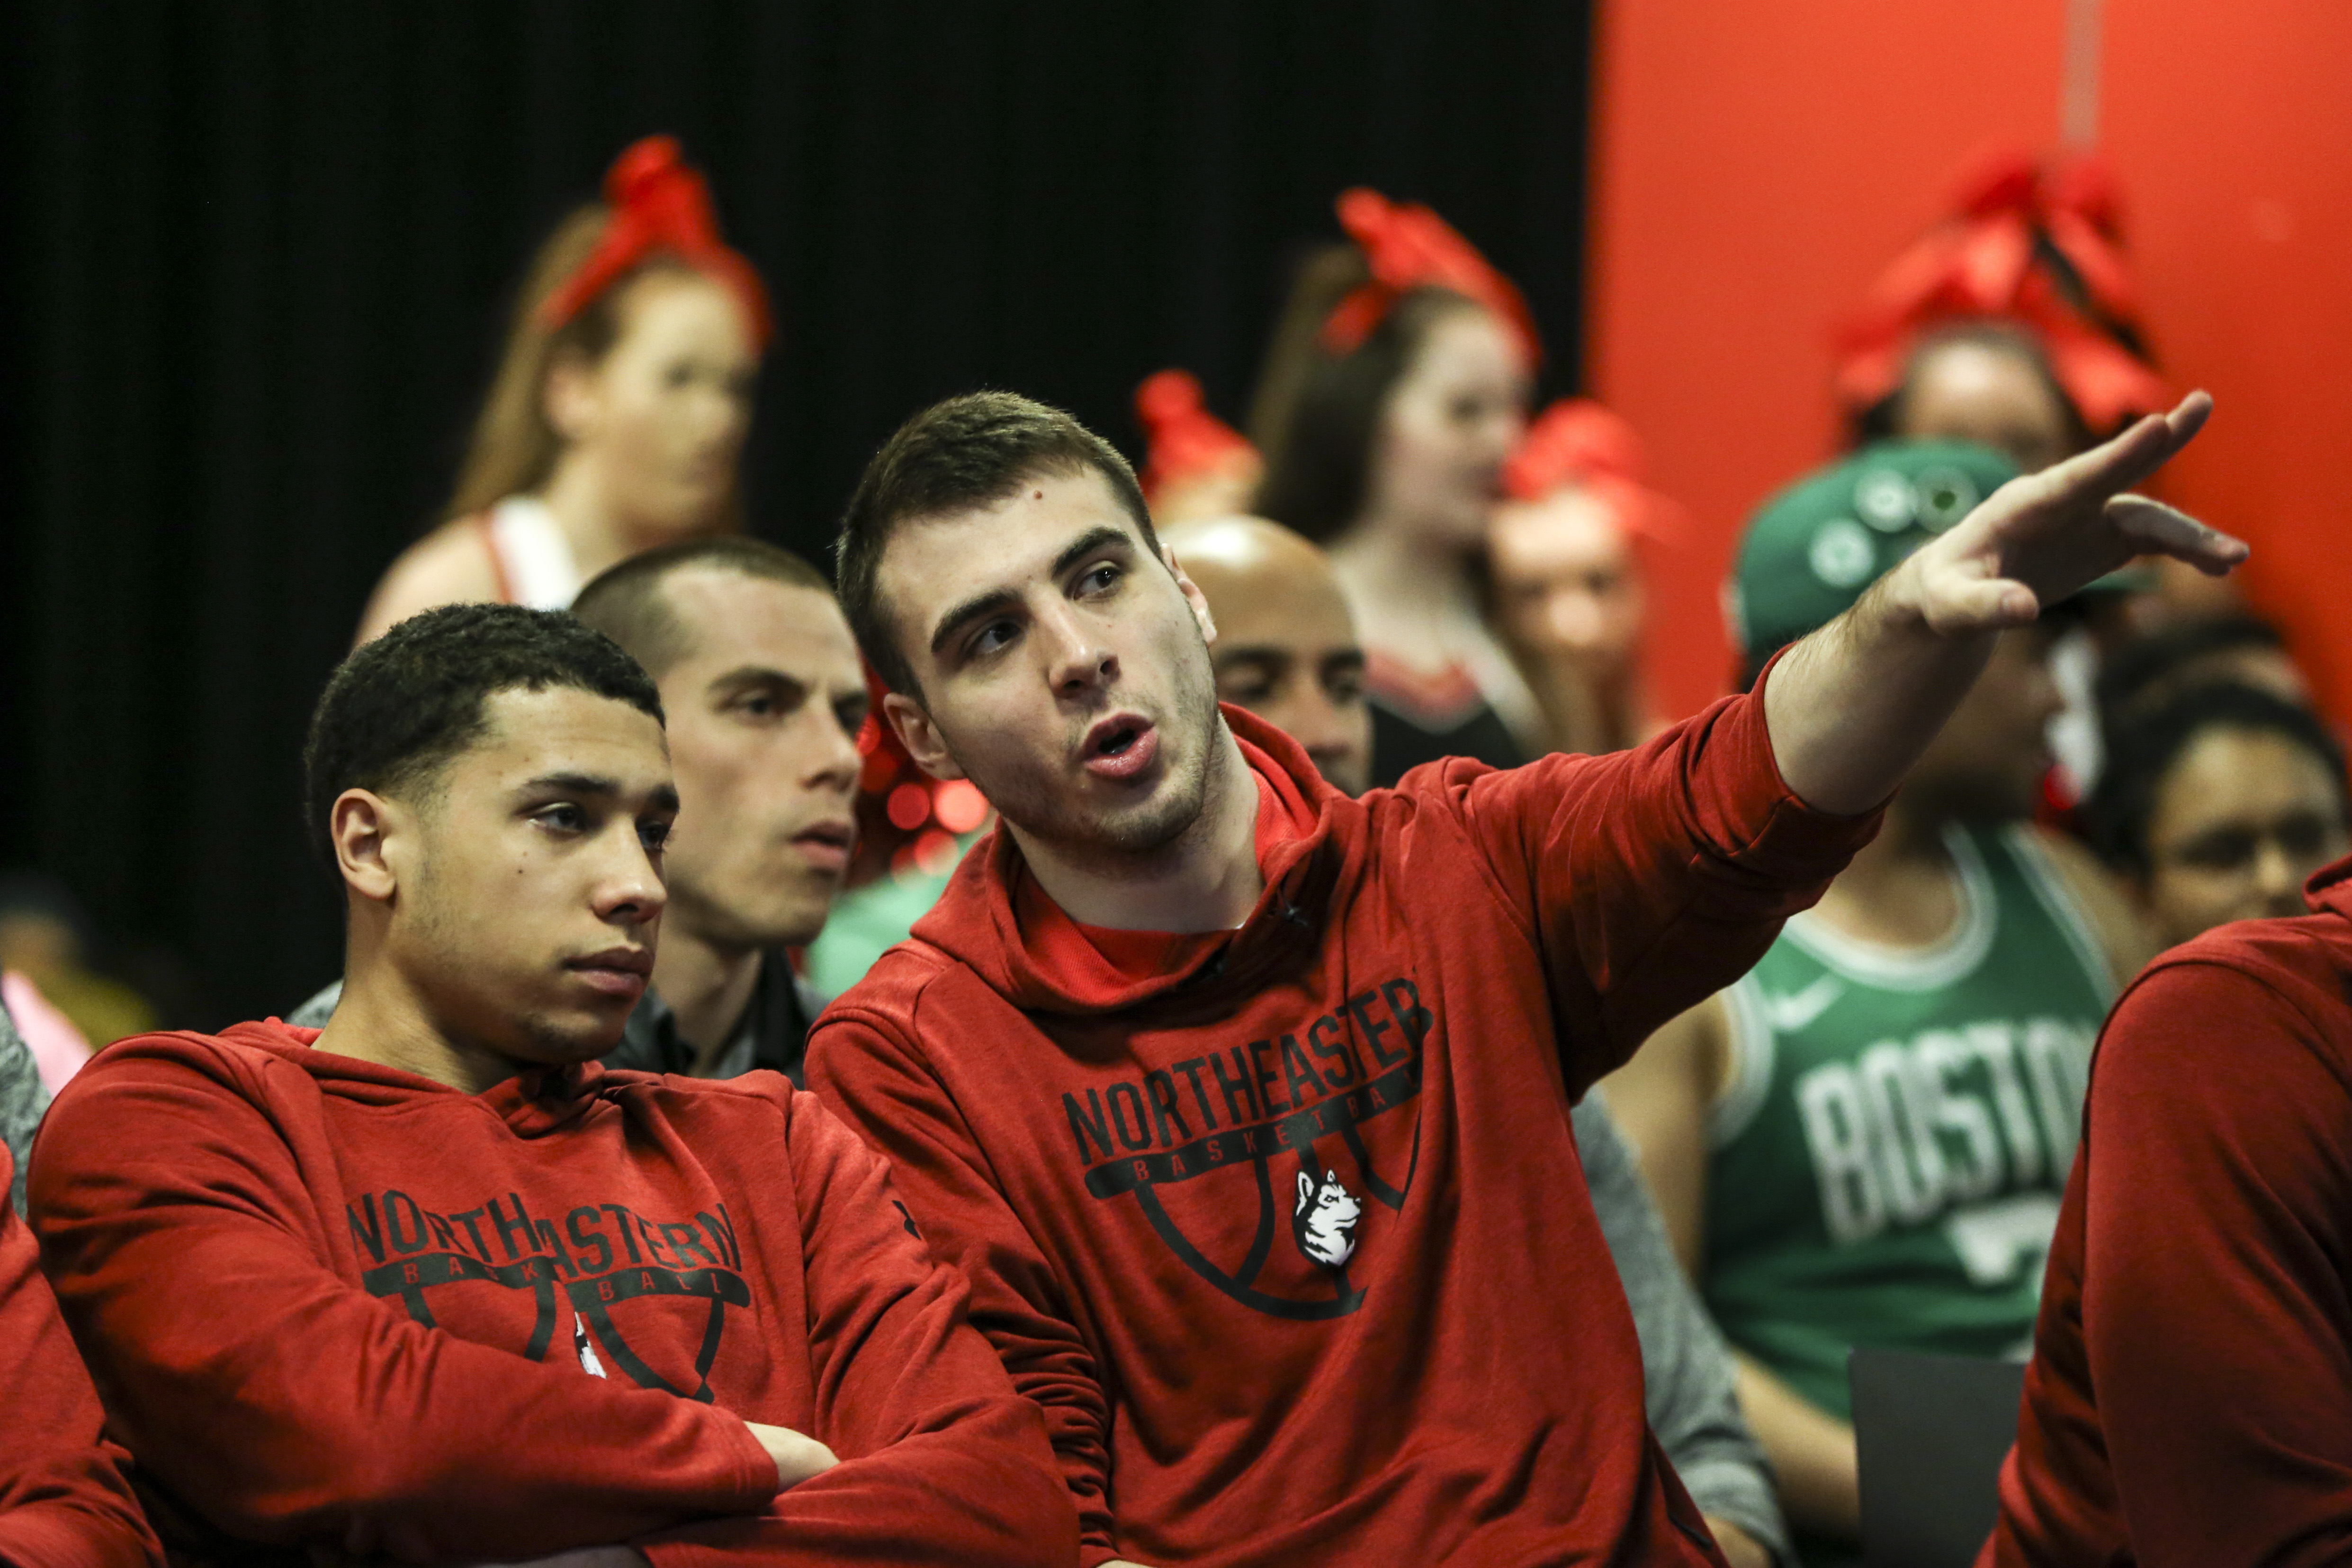 Northeastern University basketball guard Vasa Pusica (R) points to the TV during an NCAA Tournament Selection Sunday watch party in 2019